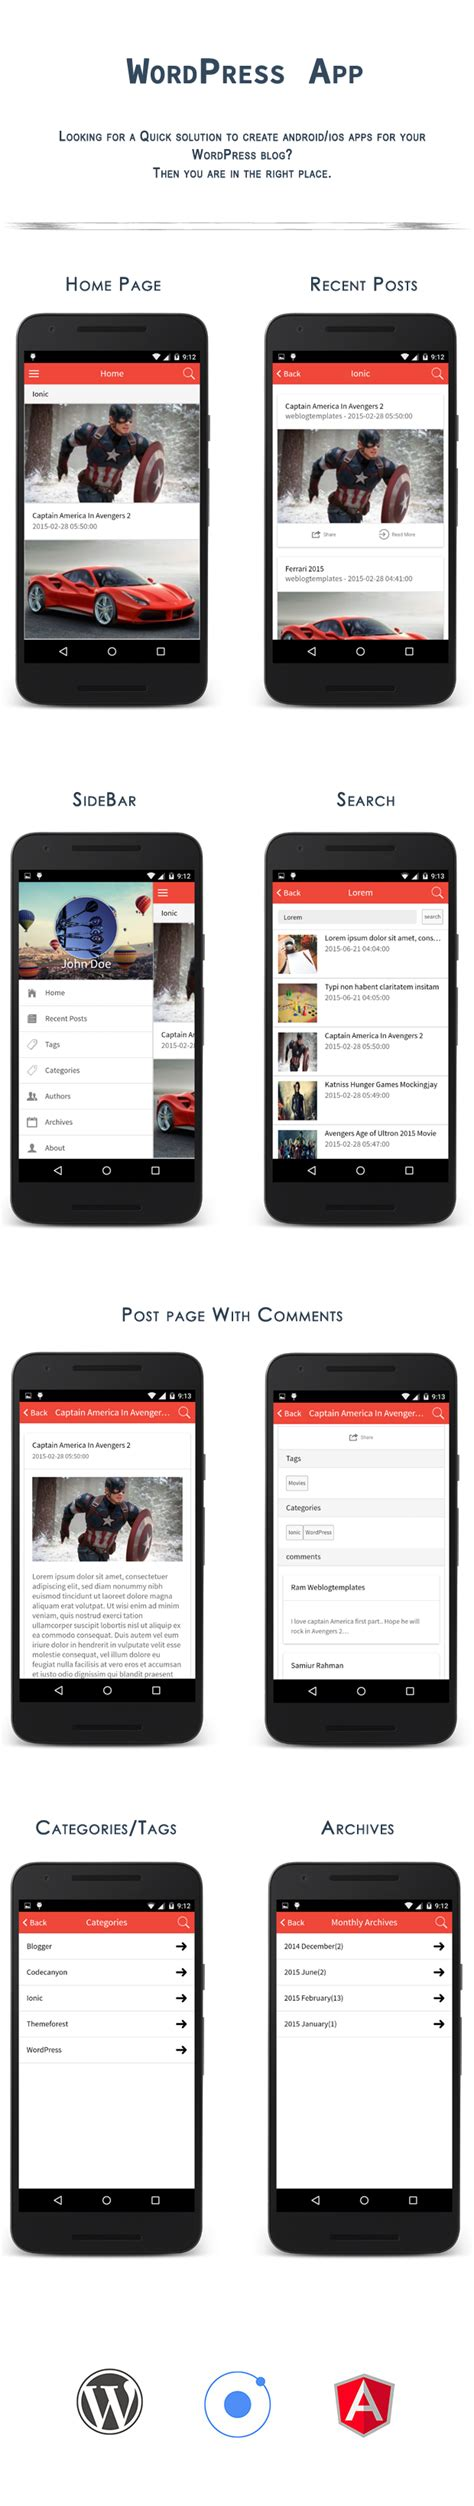 phonegap templates for android free ionwp ionic phonegap cordova wordpress app full